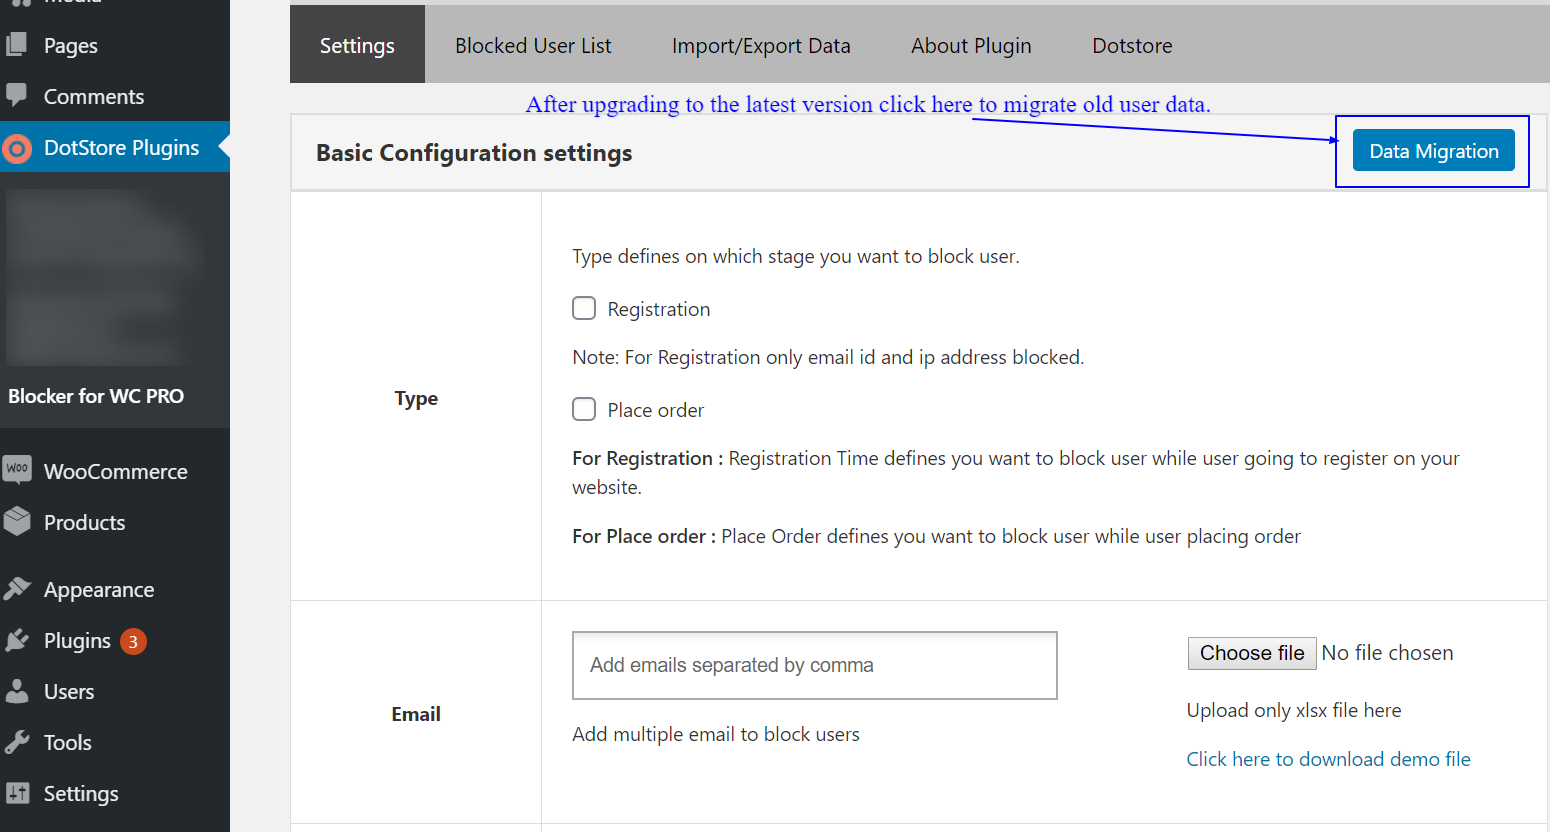 How to migrate old plugin user data